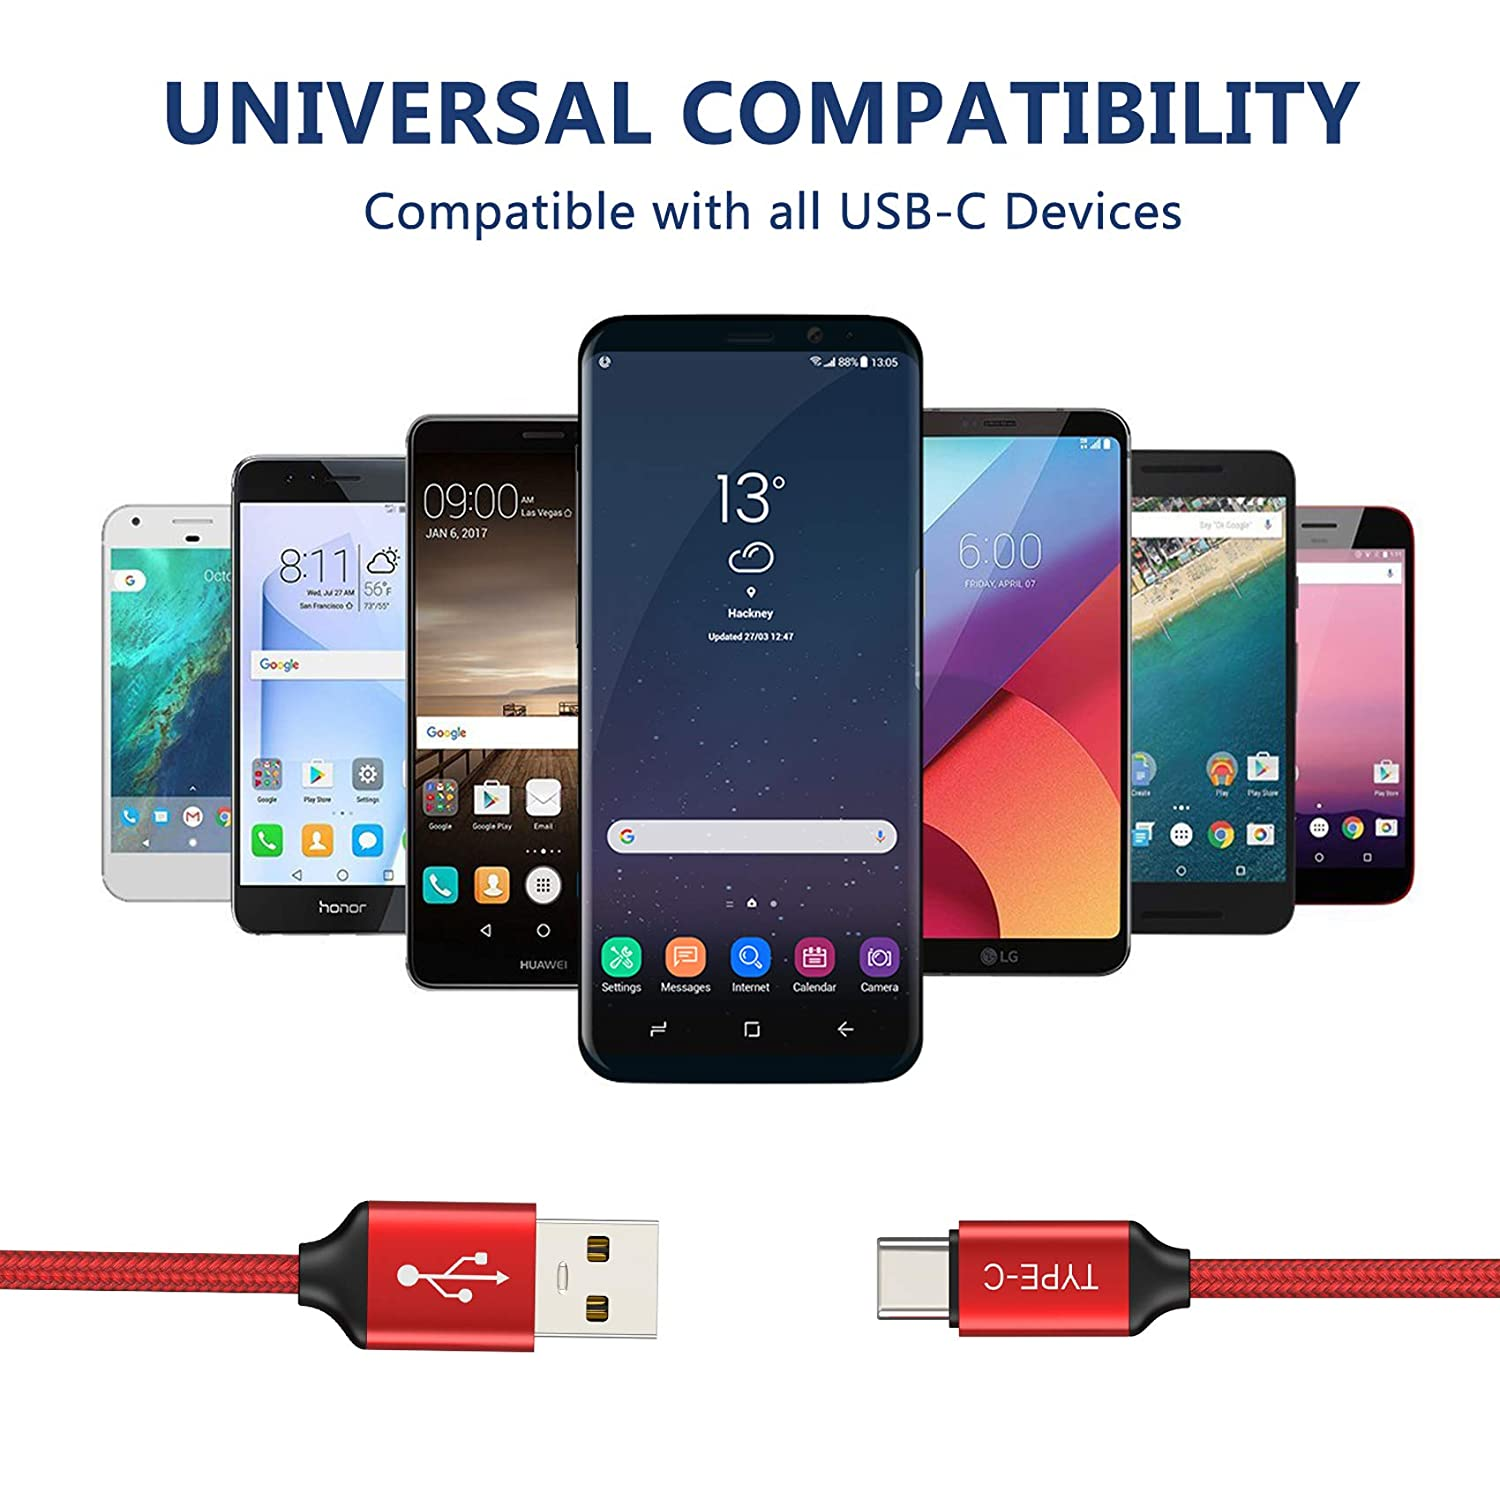 USB Type C Cable,3FT 2PACK,USB-C Charging Cord Fast Charging Compatible Samsung Galaxy Note 9 8 S10 S9 S8 Plus,Google Pixel 2 XL,LG G7 V35 ...